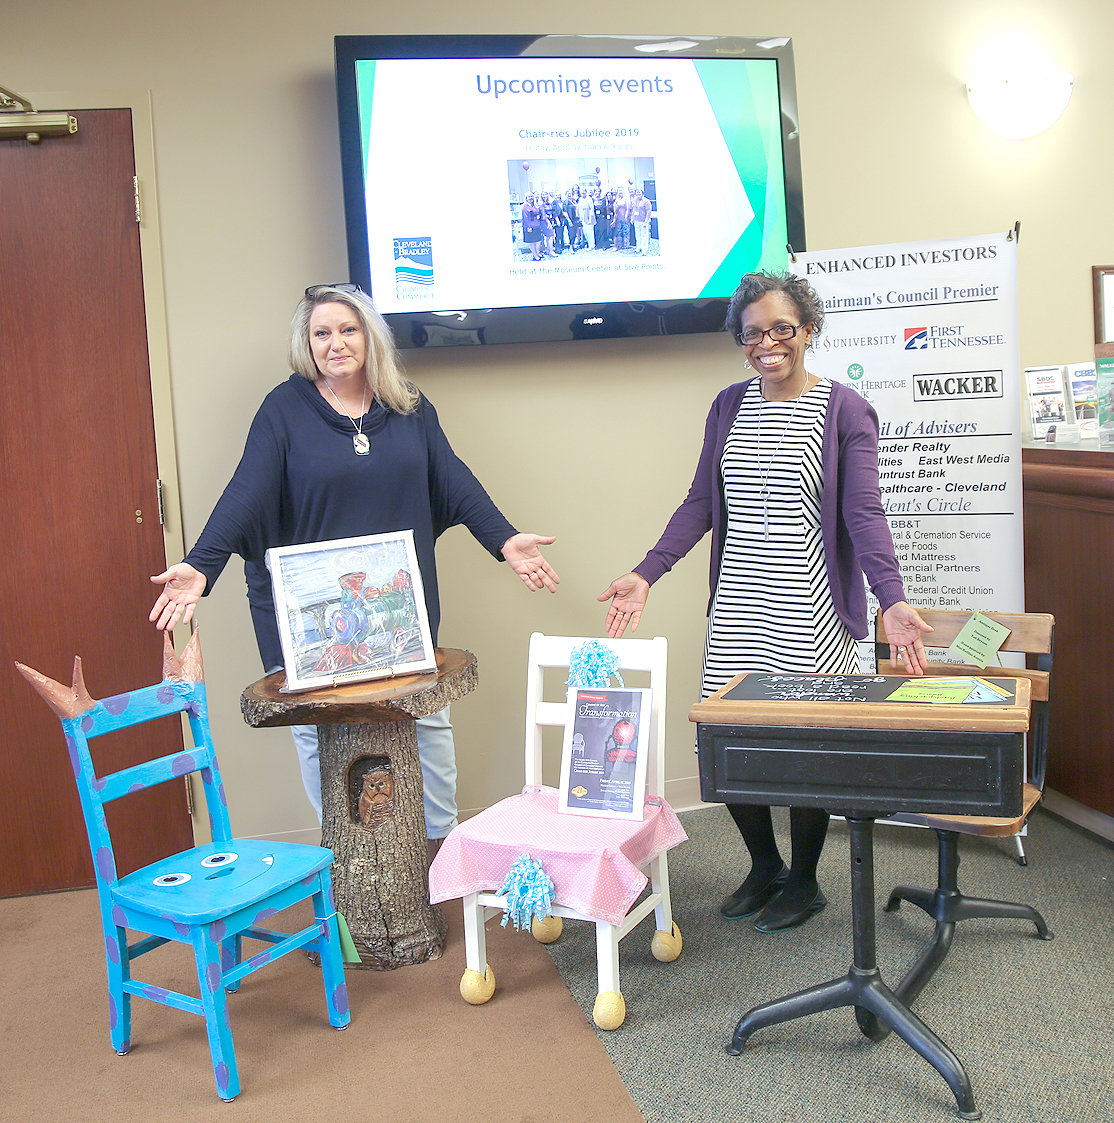 "Tickets are on sale now at the Cleveland/BradleyChamber of Commerce and the Red Ribbon for the 2019 Chair-ries Jubilee event, ""Coming of Age Transformation."" Chairs and other items like these, presented here by Chair-ries members Kim Currin, left, and Traci Wright, will be available. Tickets are $25 in advance, $30 at the door. The doors will open at 6 p.m., Friday, April 12, at the Museum Center for bidding on these and many more items."